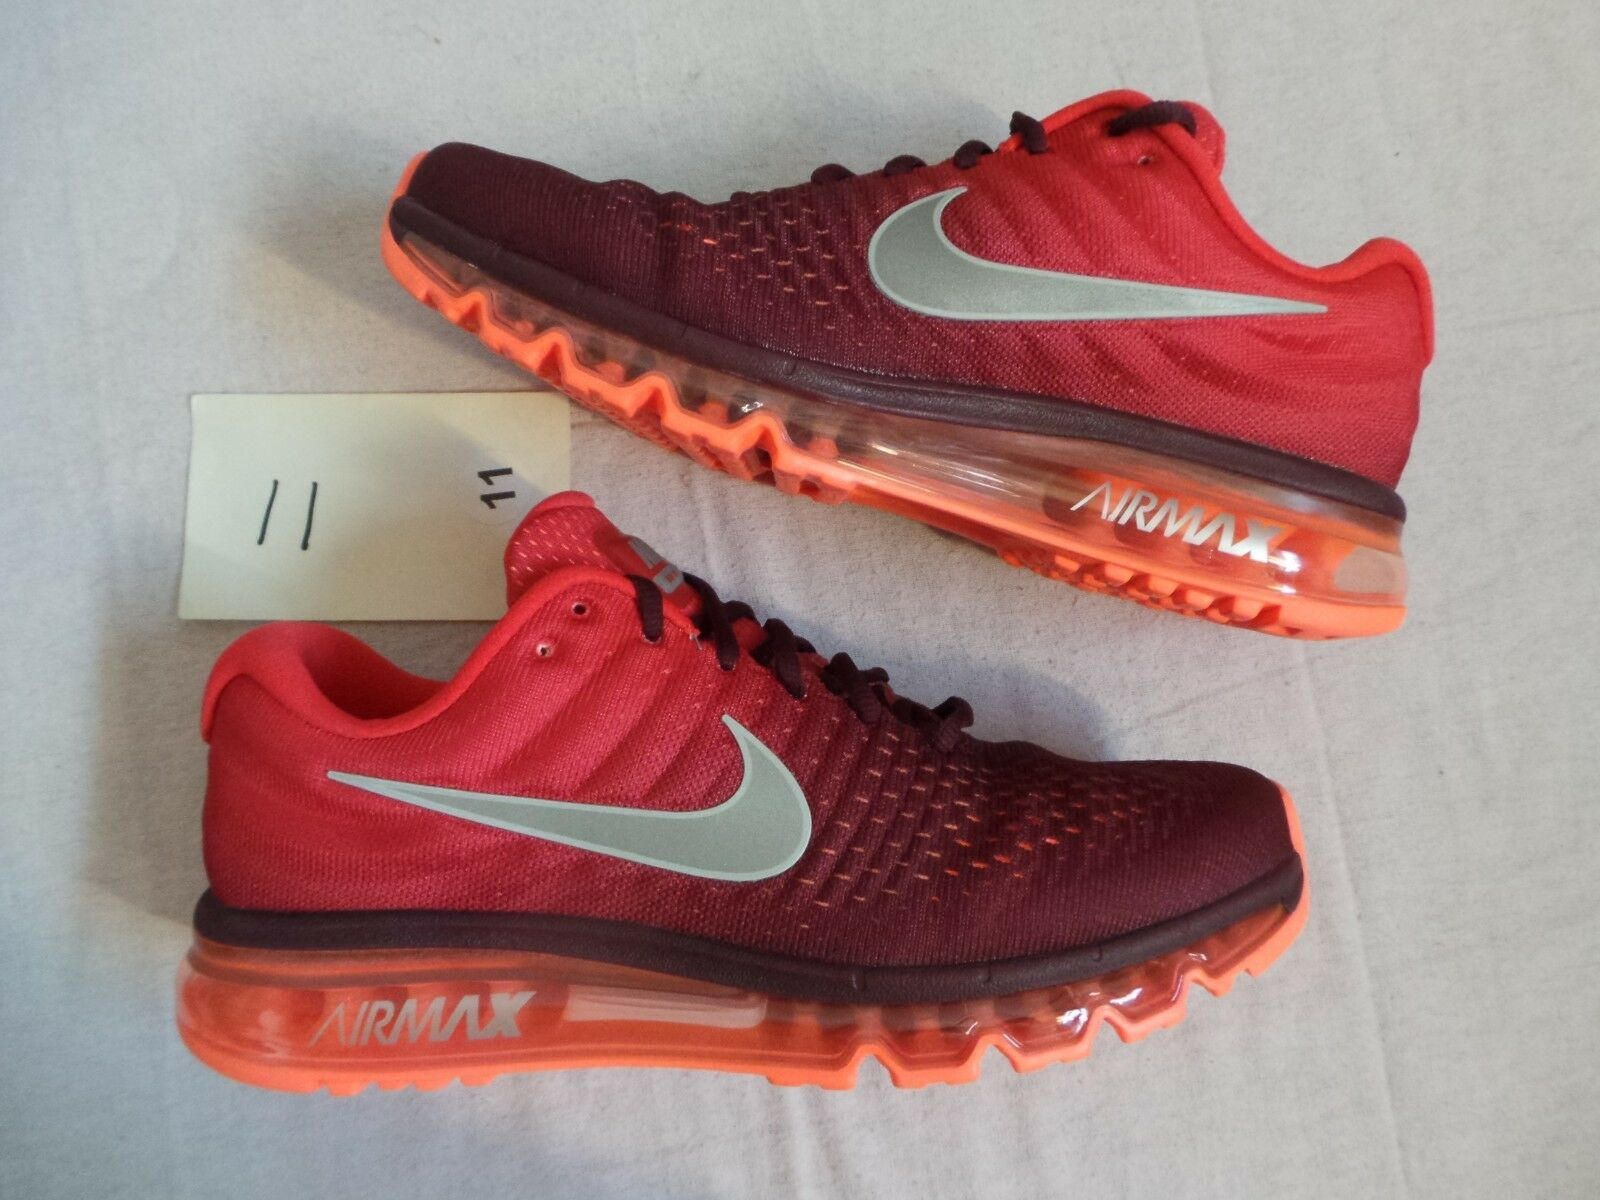 Nike Air Max AirMax 2017 AirMax2017 team red gym red size 11 DS NEW  190 MSRP